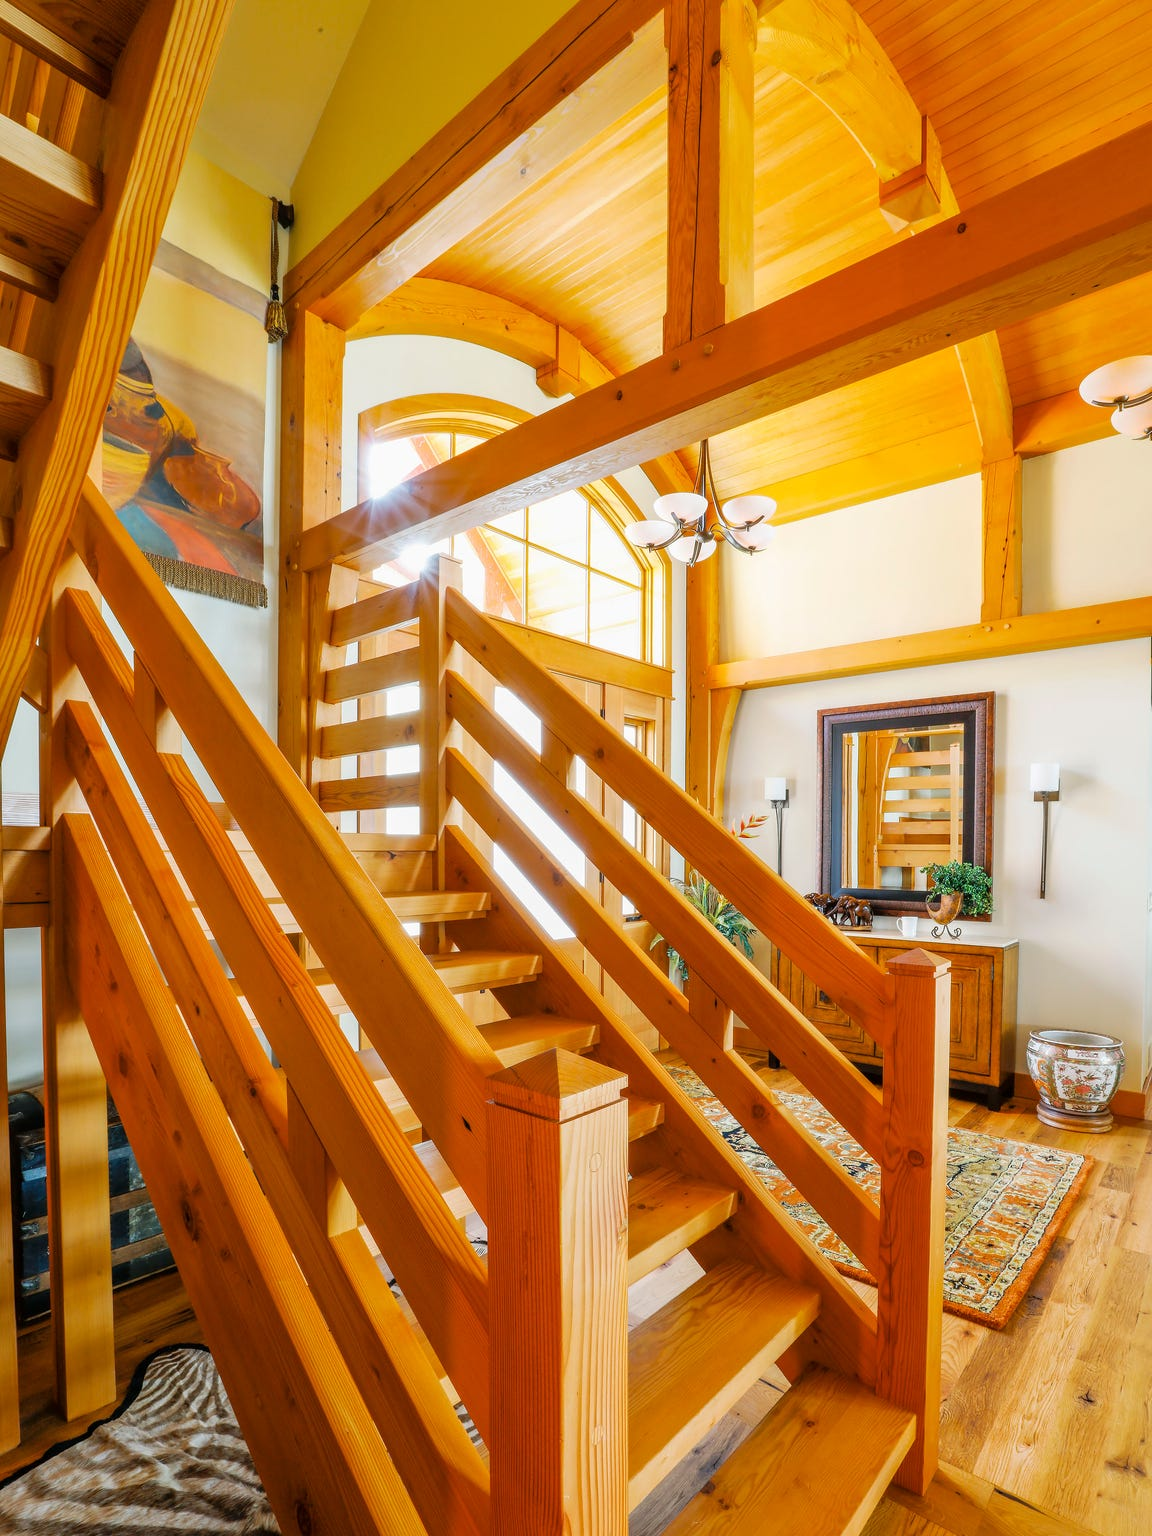 Arching ceilings accentuate the Craftsman-style design.